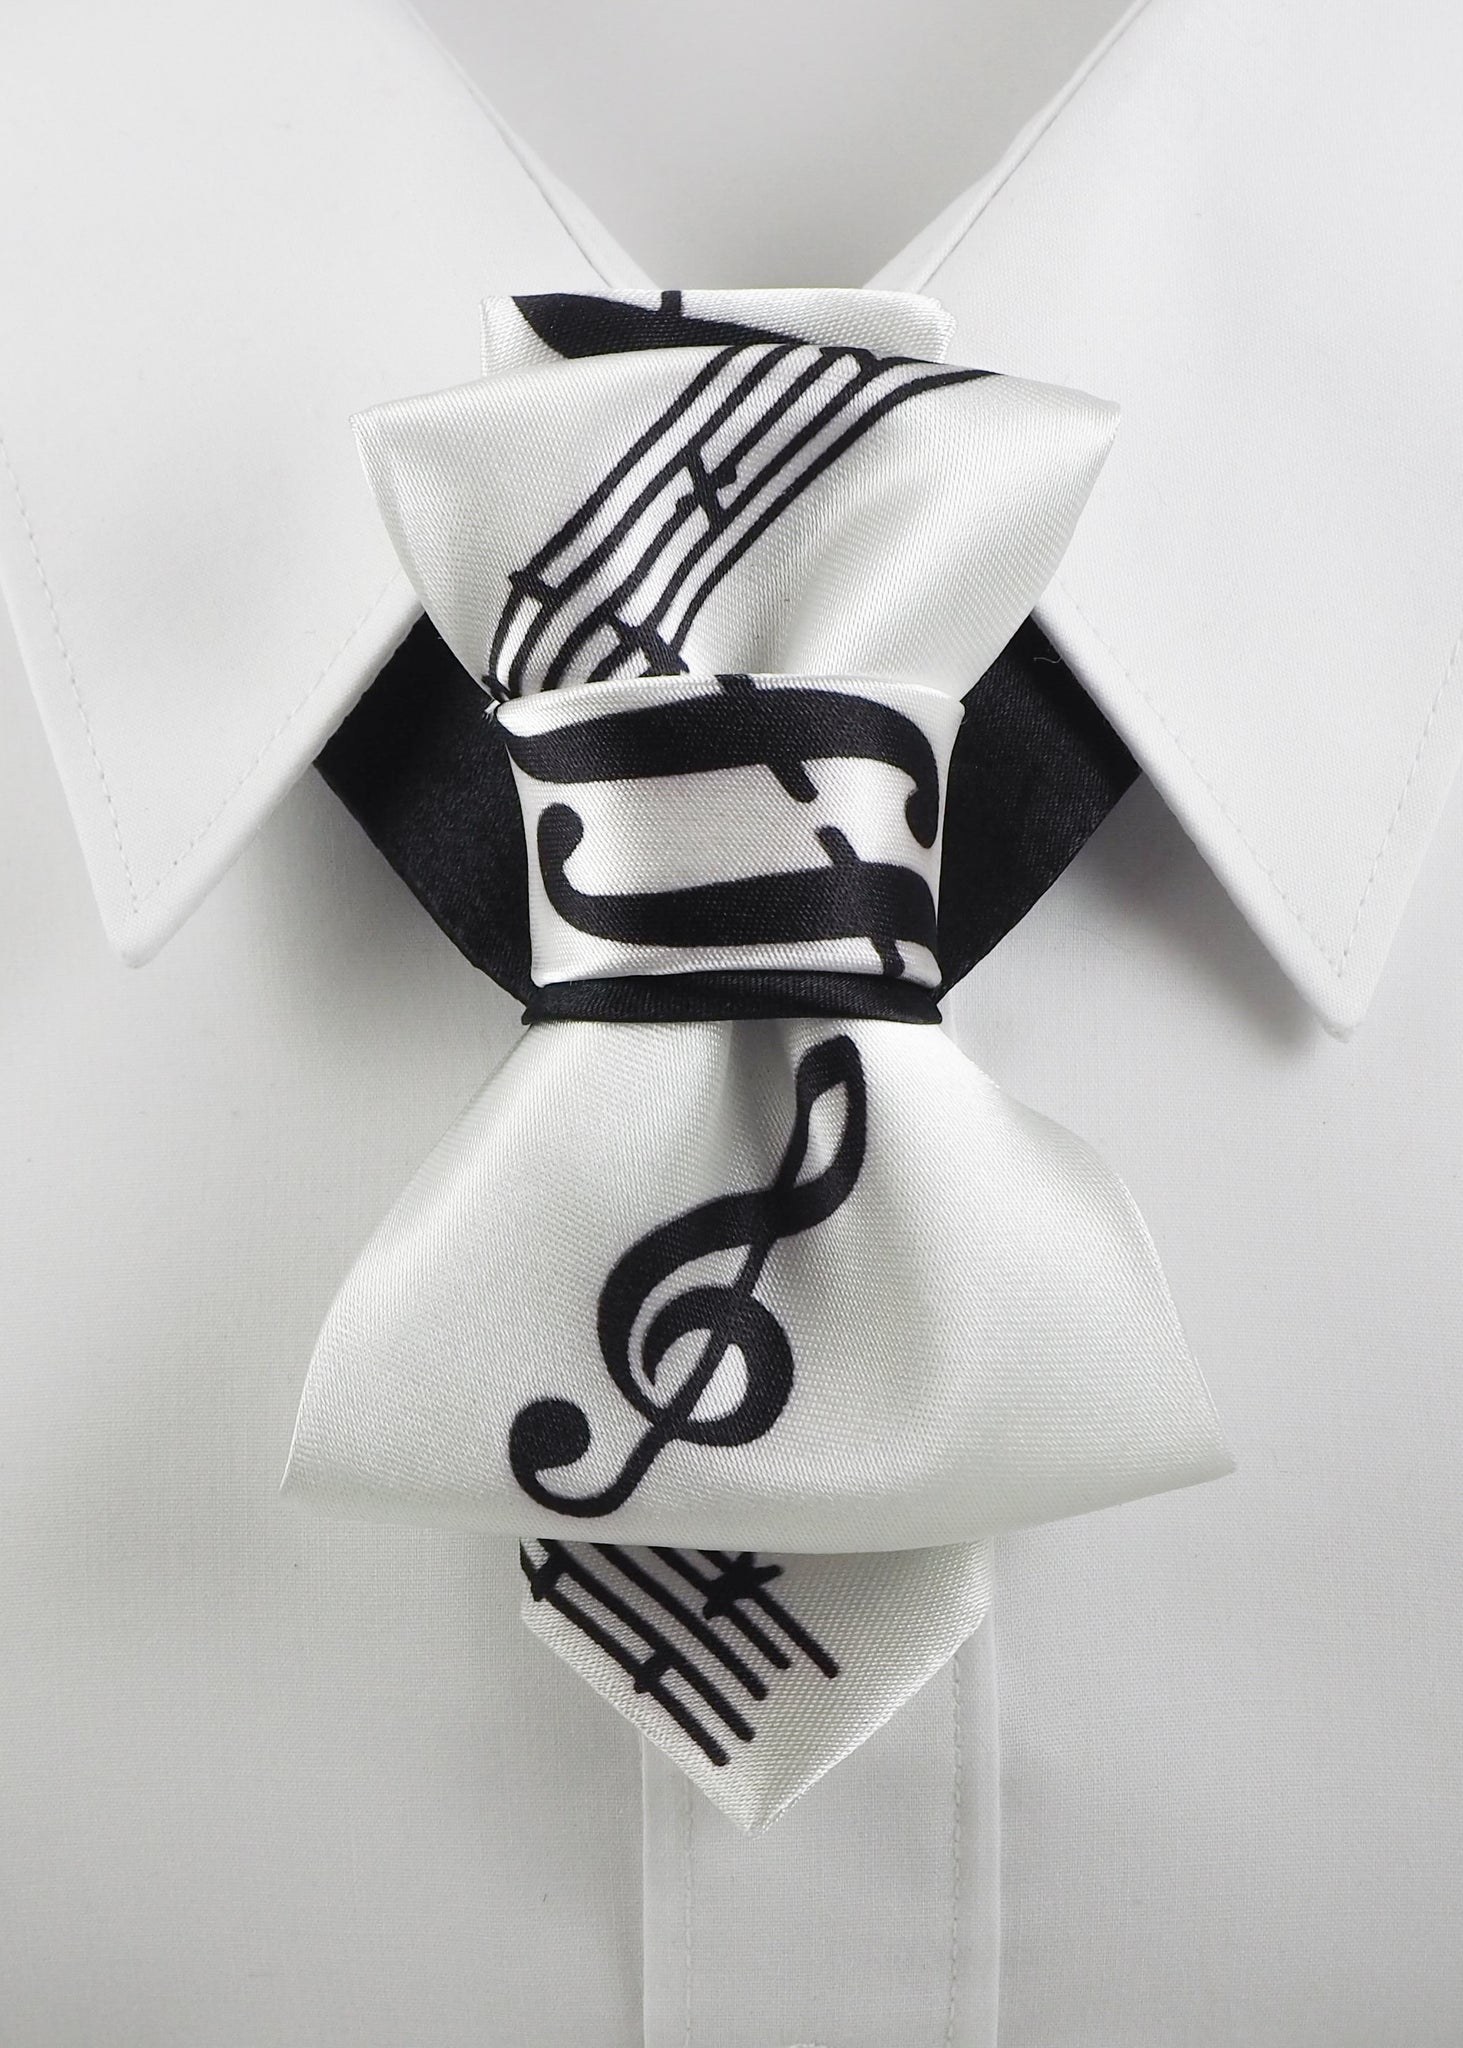 Bow Tie, Tie for wedding suite MOCART hopper tie Bow tie